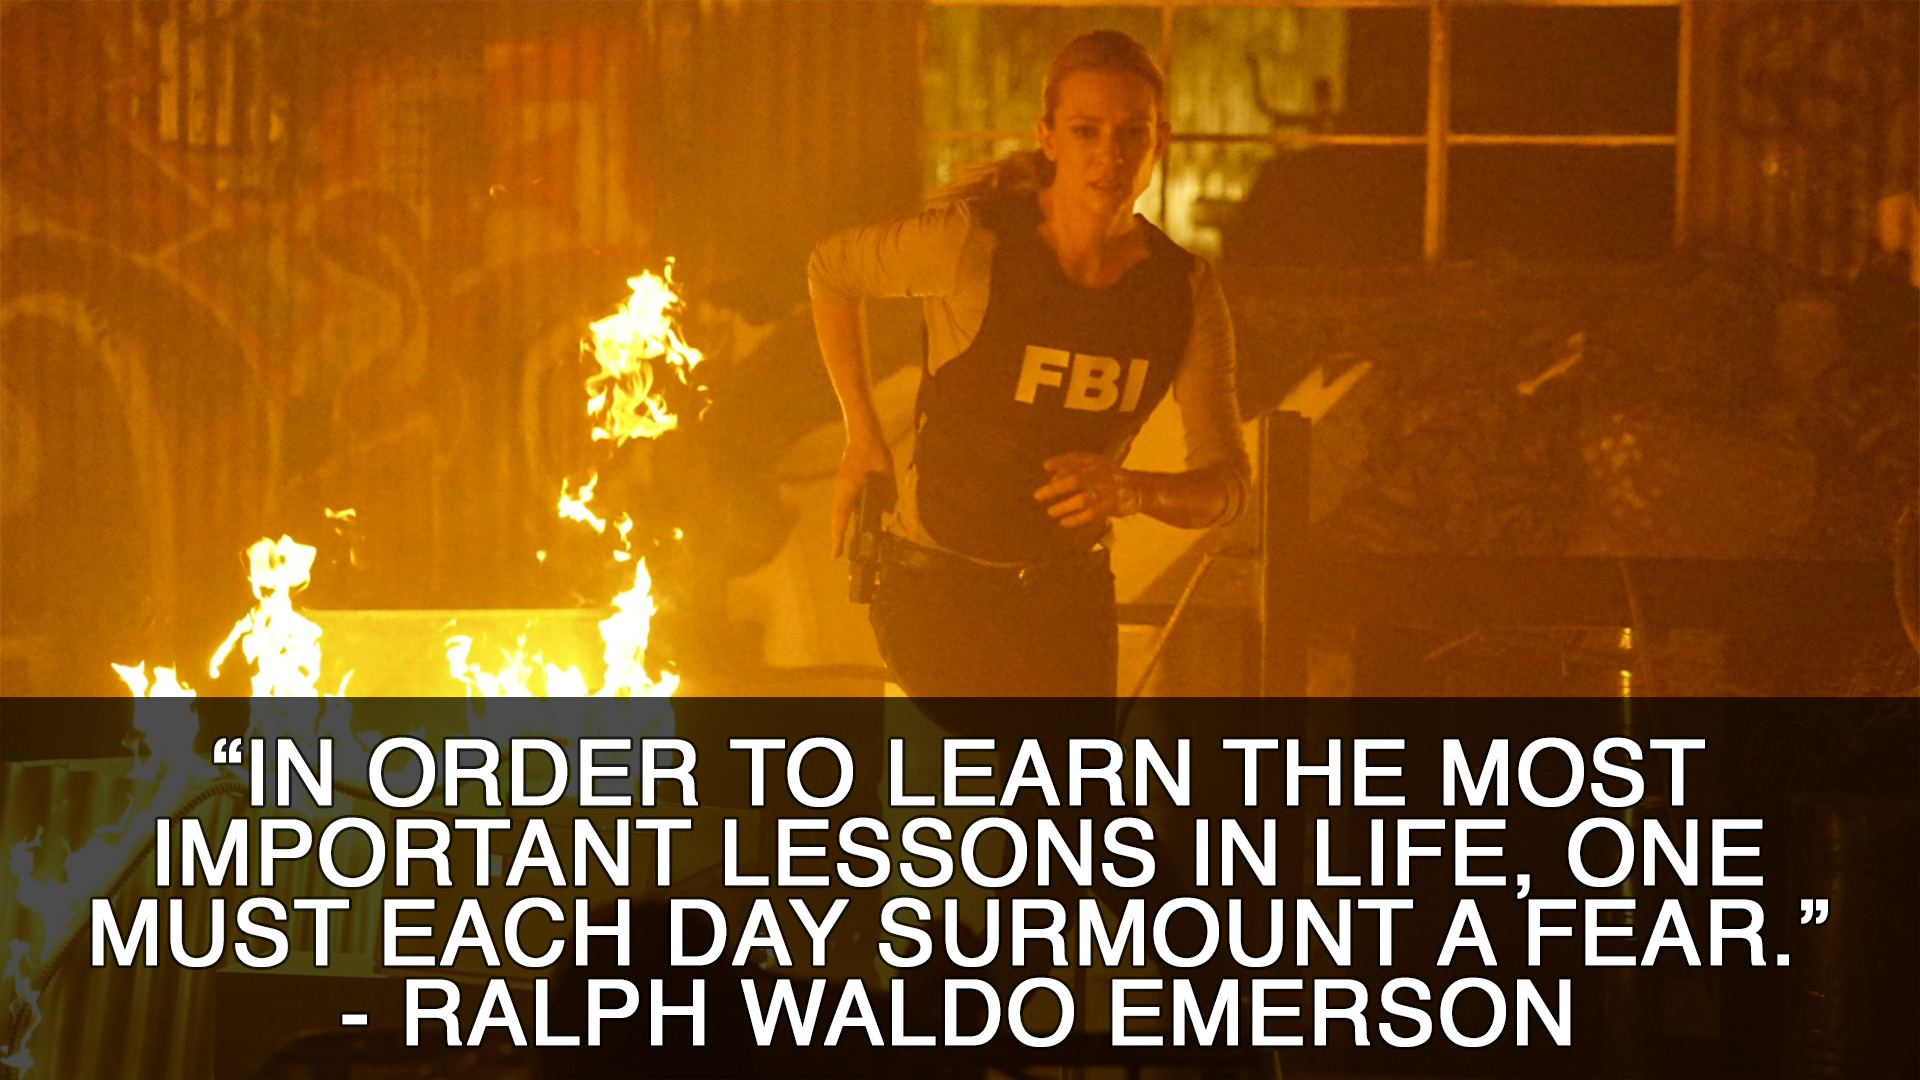 15 Profound Criminal Minds Quotes That Will Inspire You - Criminal